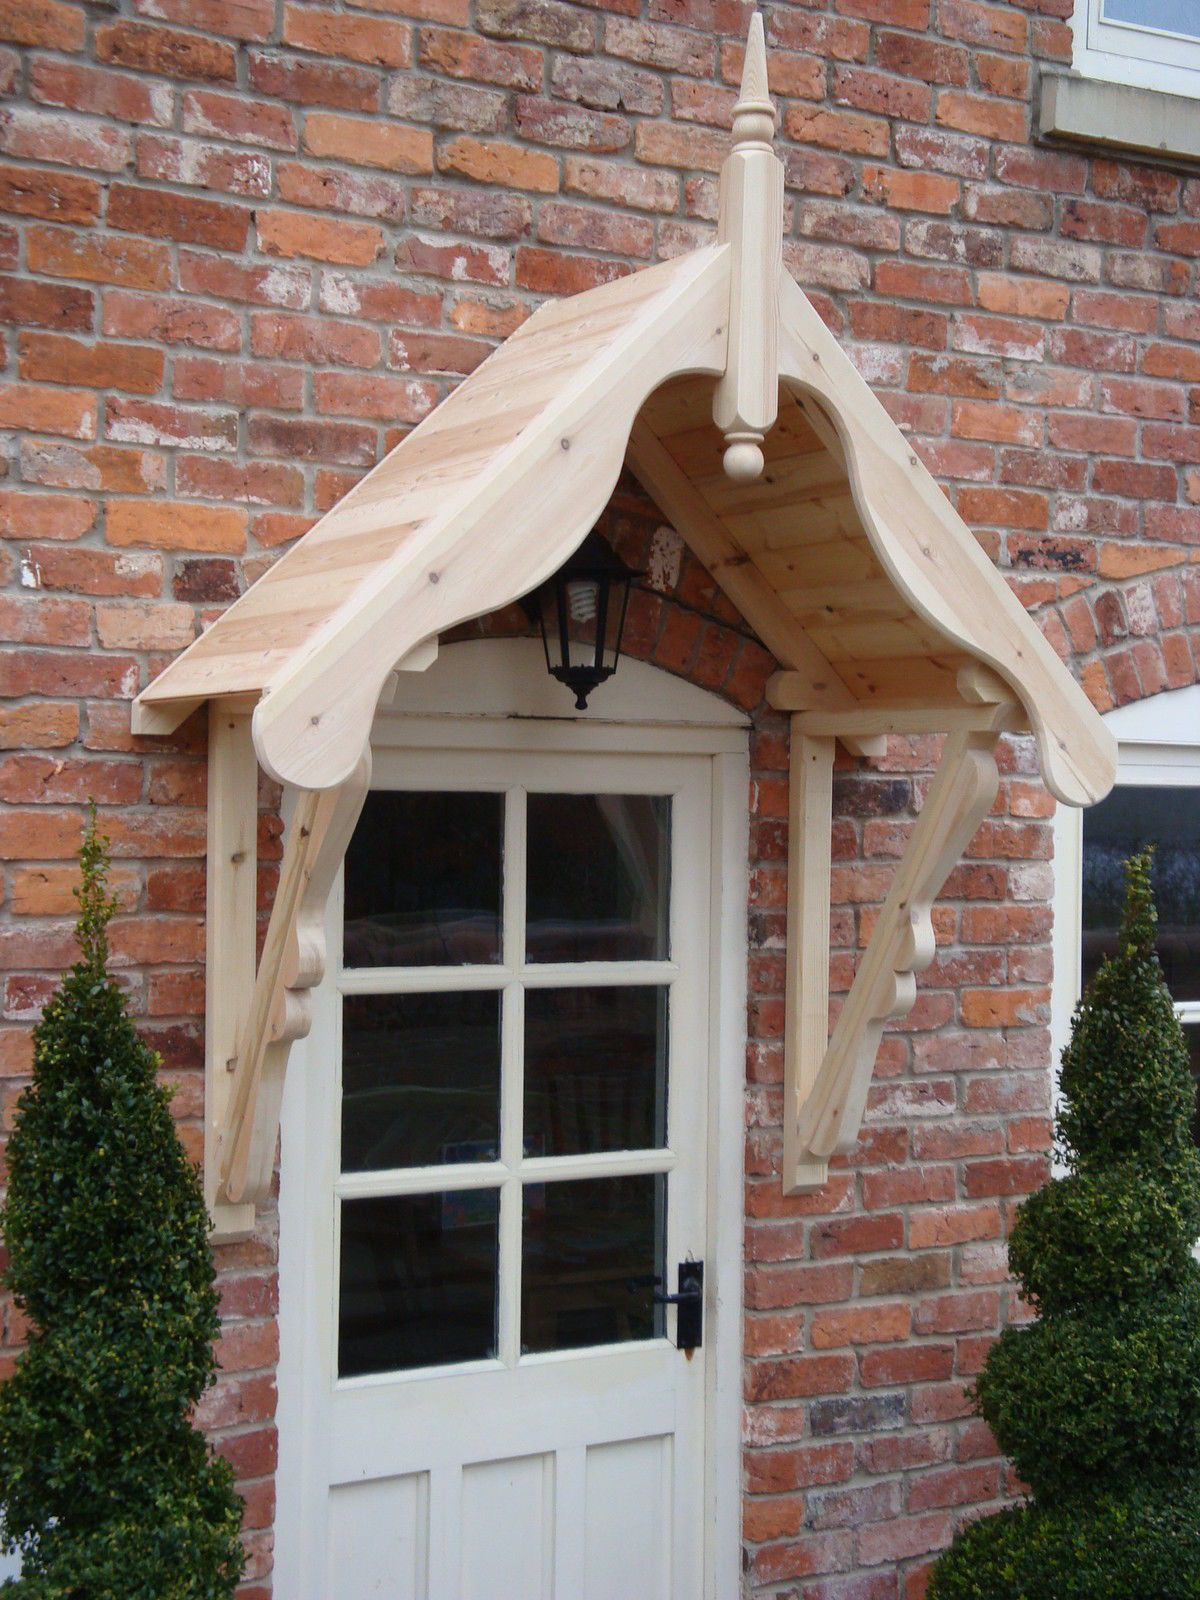 Timber front door canopy porch 1050mm ludlowgallows brackets timber front door canopy porch 1050mm ludlowgallows brackets canopy rubansaba